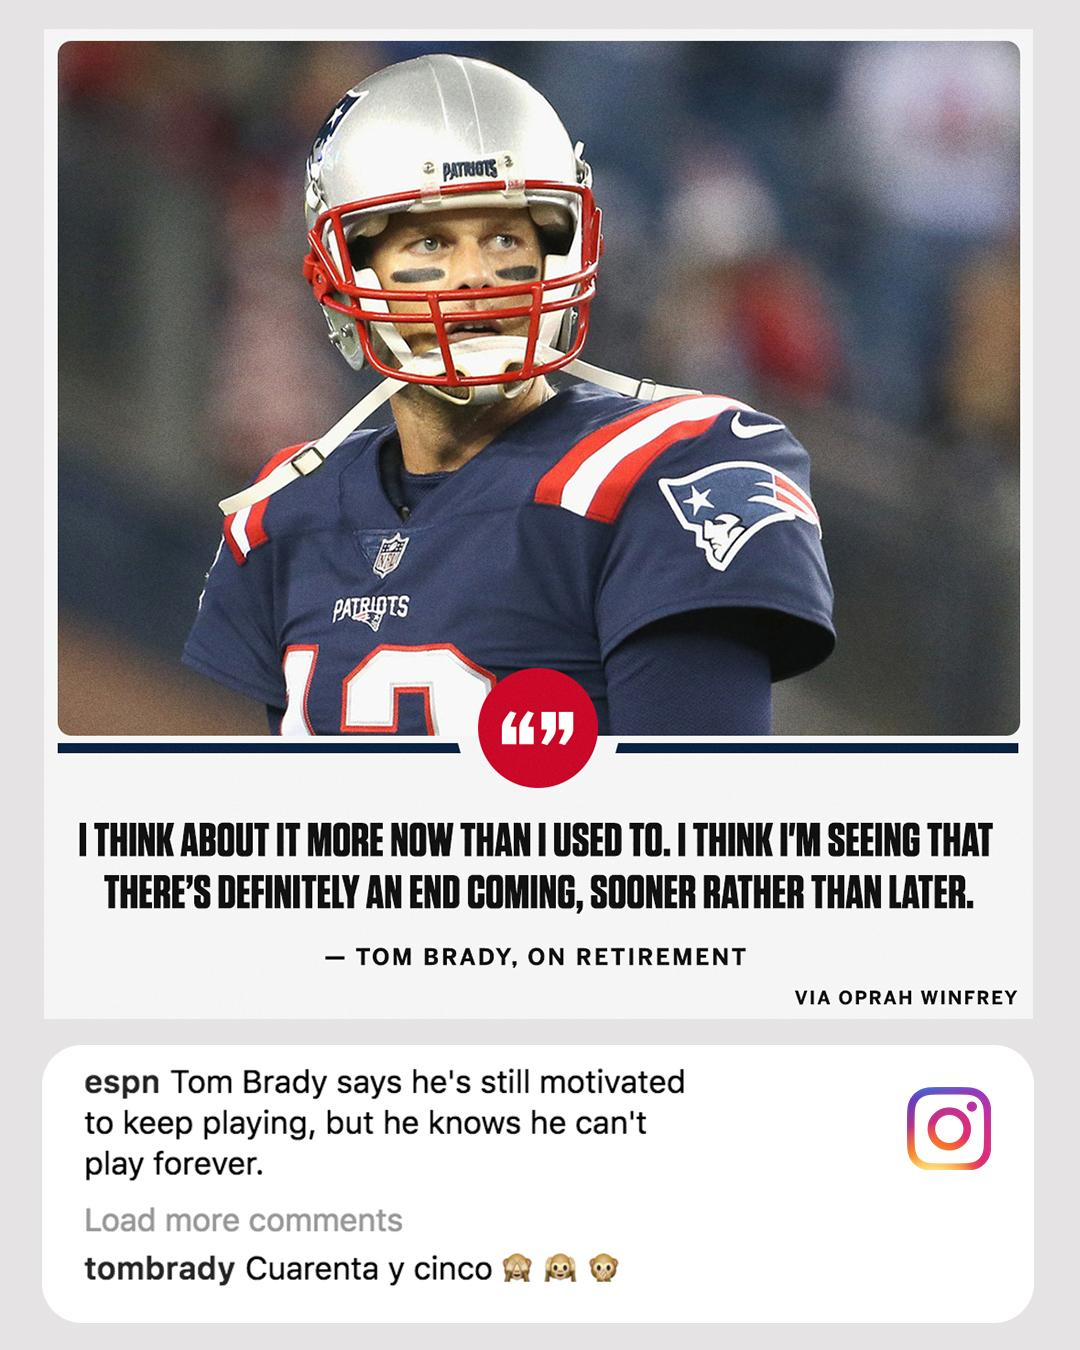 Tom Brady left a comment on our Instagram post about his feelings on retirement. That's '45' in Spanish, by the way. https://t.co/ASEKuY1KPi